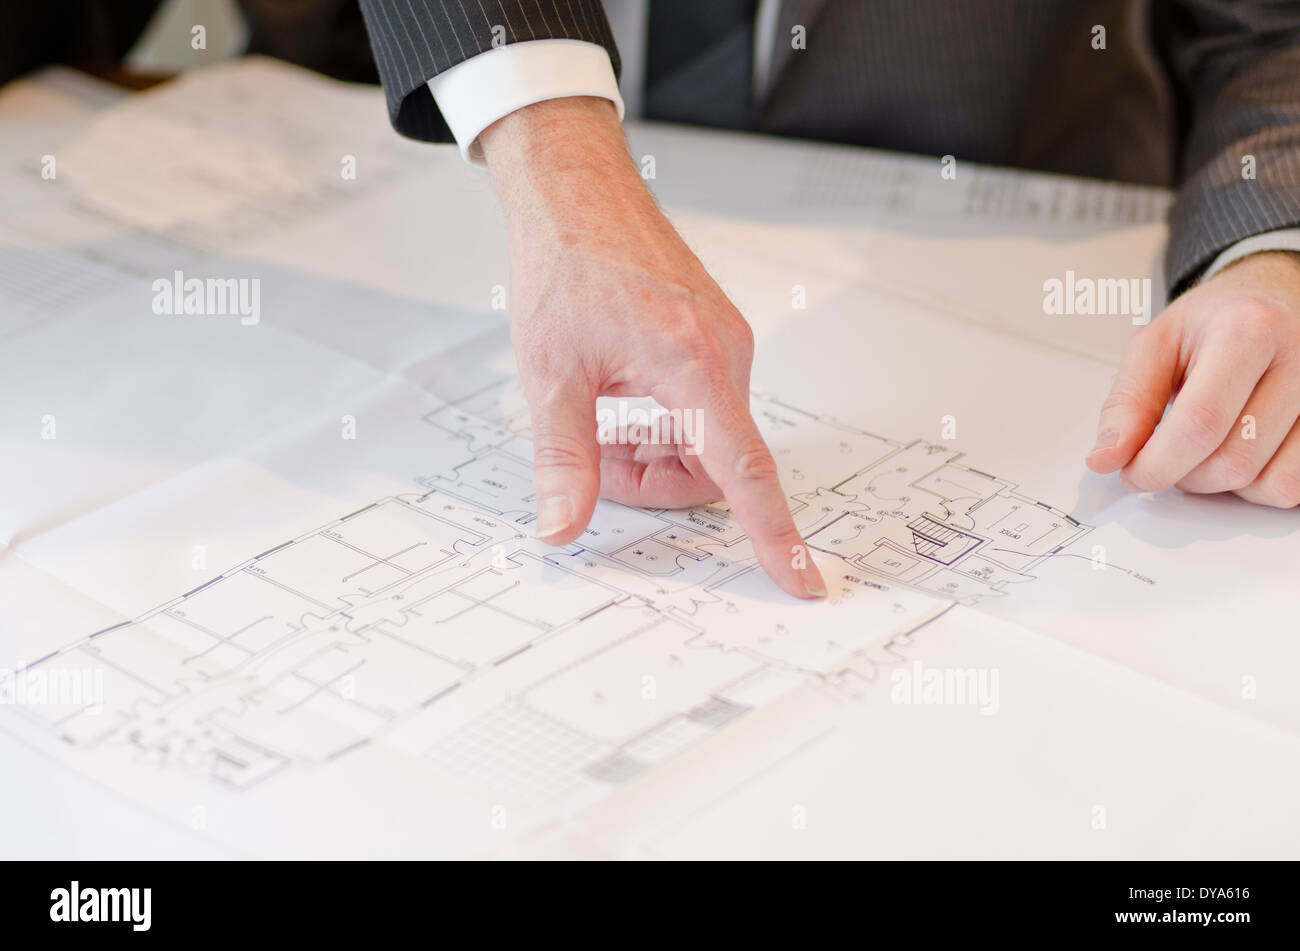 meeting room table electrical plans stock photos \u0026 meeting room Electrical Plans Drawings